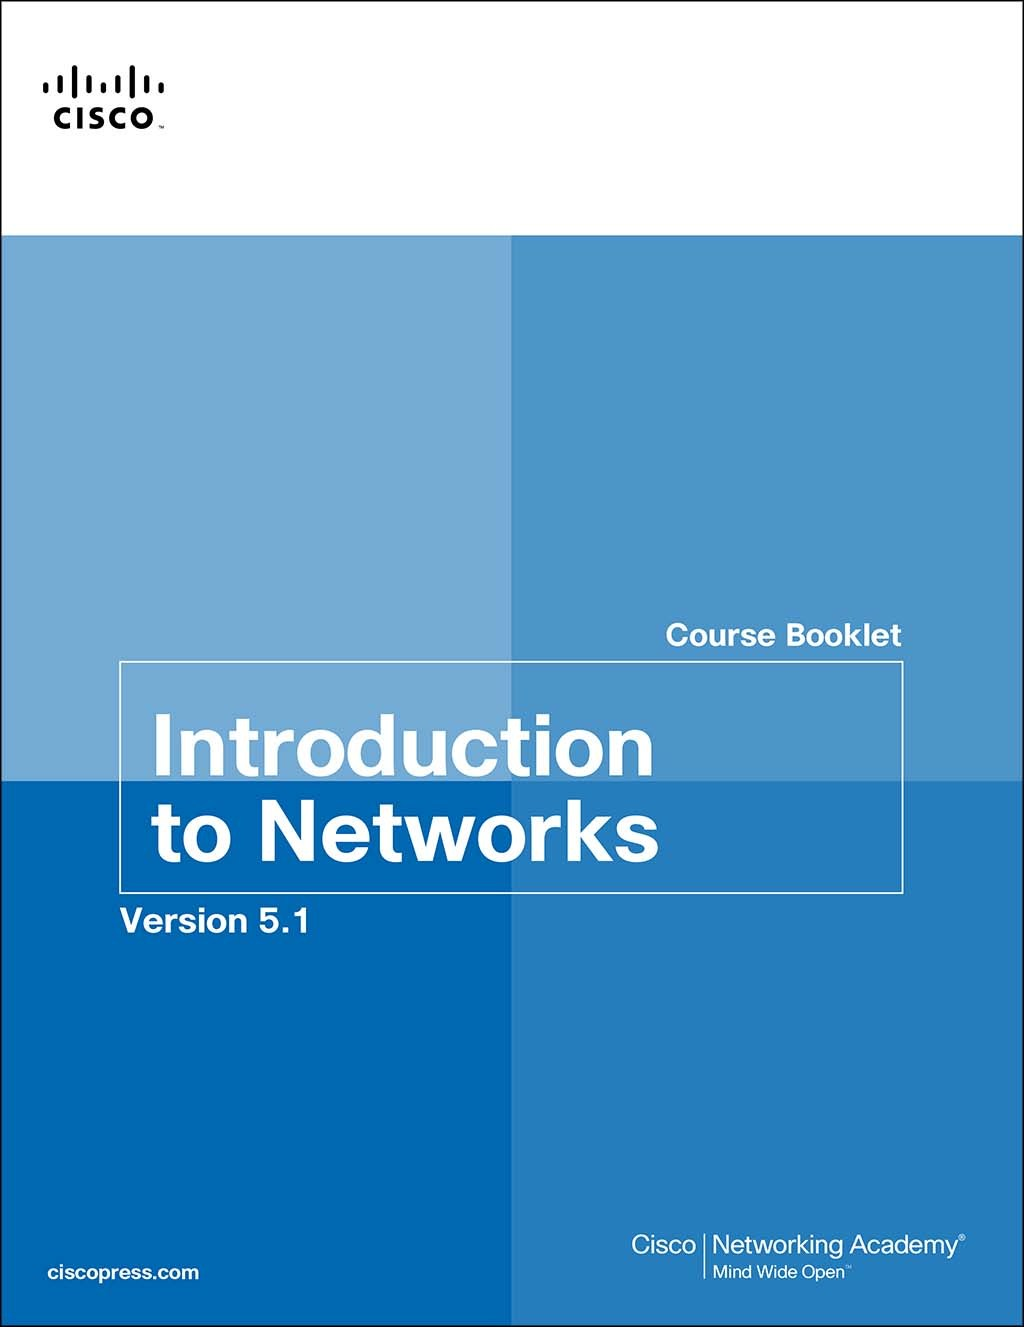 Introduction to Networks Course Booklet v5.1